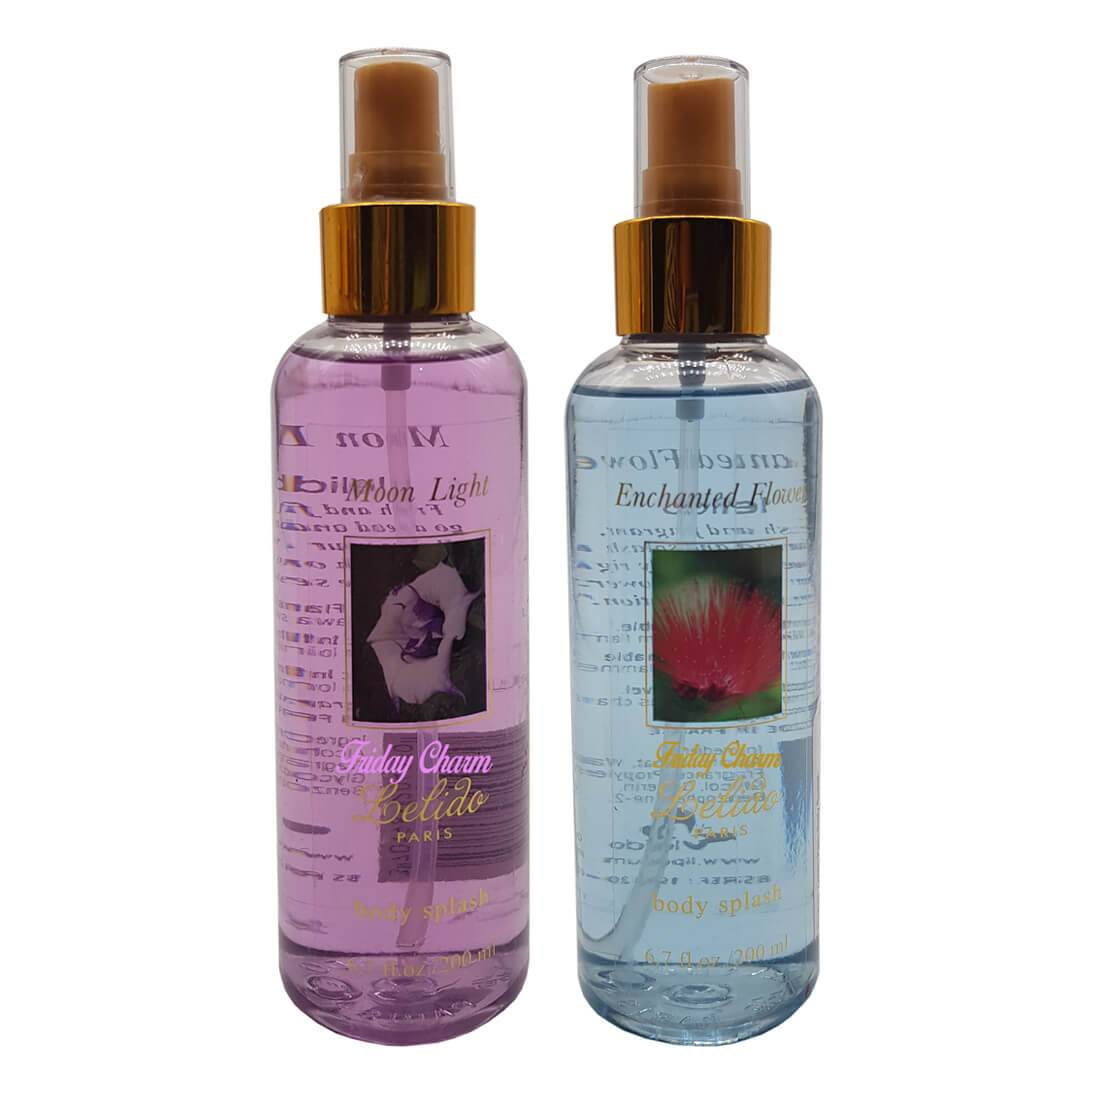 Lelido Paris Moon Light & Enchanted Flower Body Splash Mist 200ml